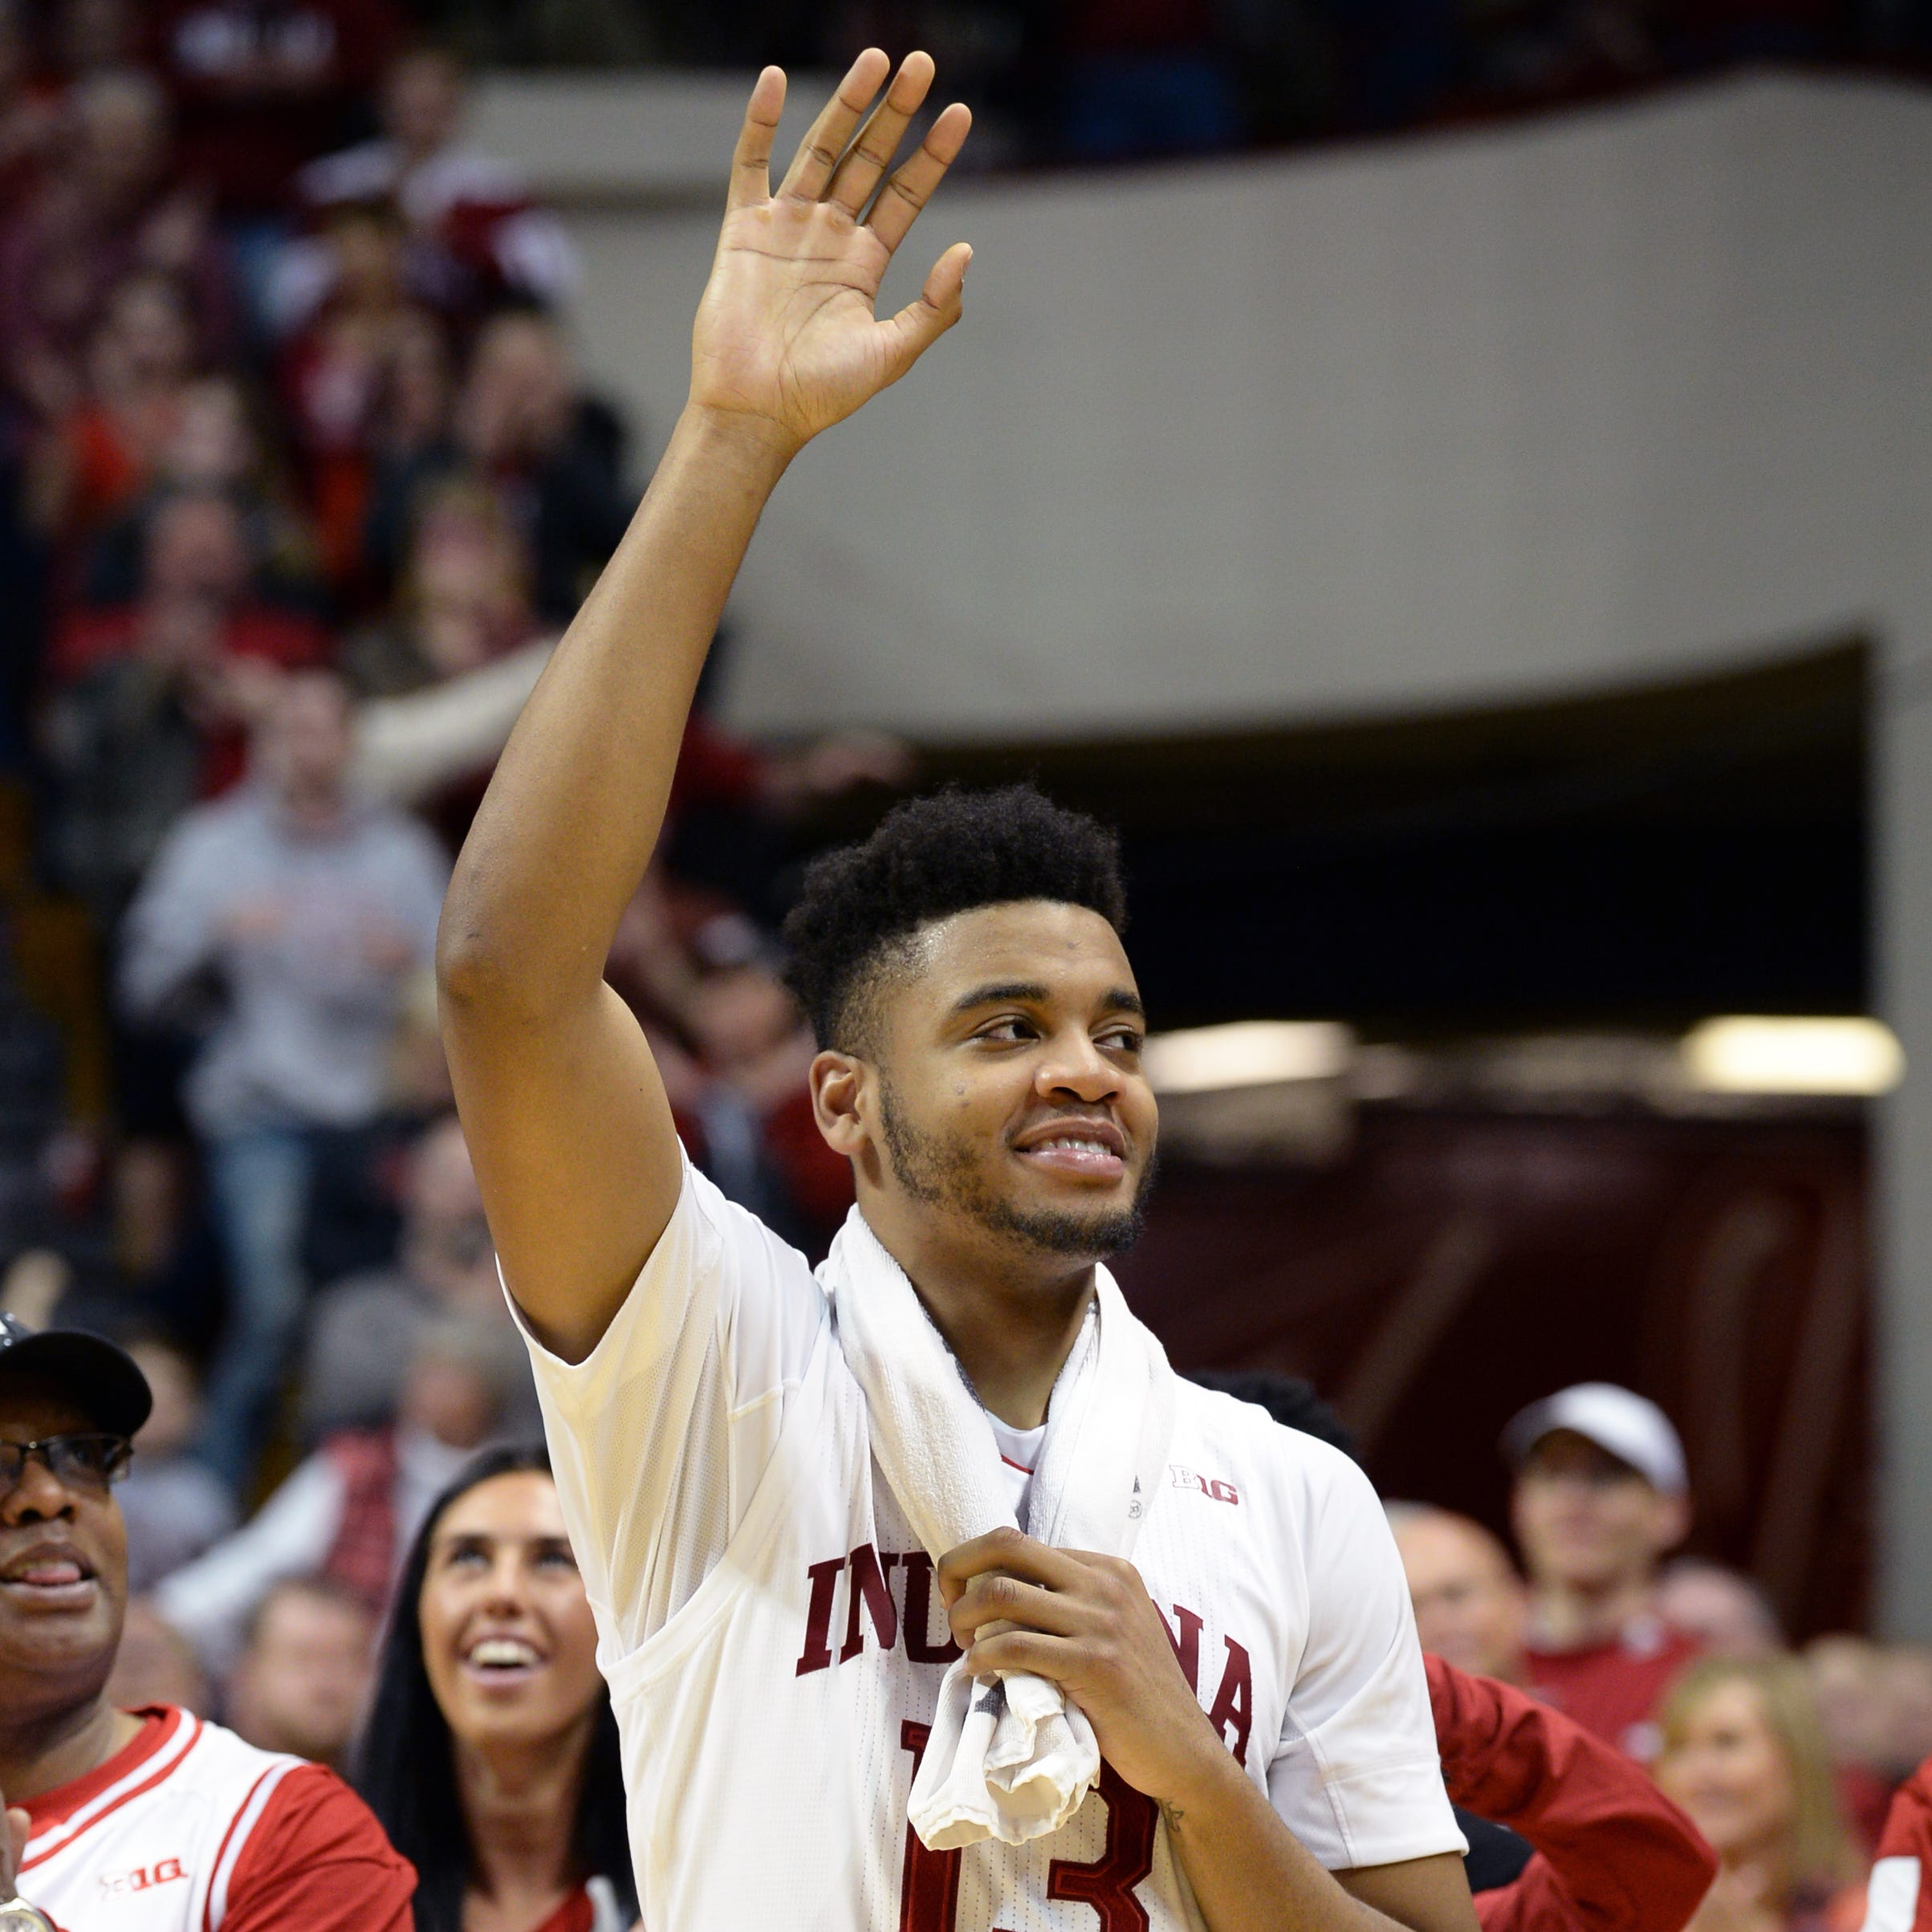 Insider: Juwan Morgan signs off in style on IU's senior day